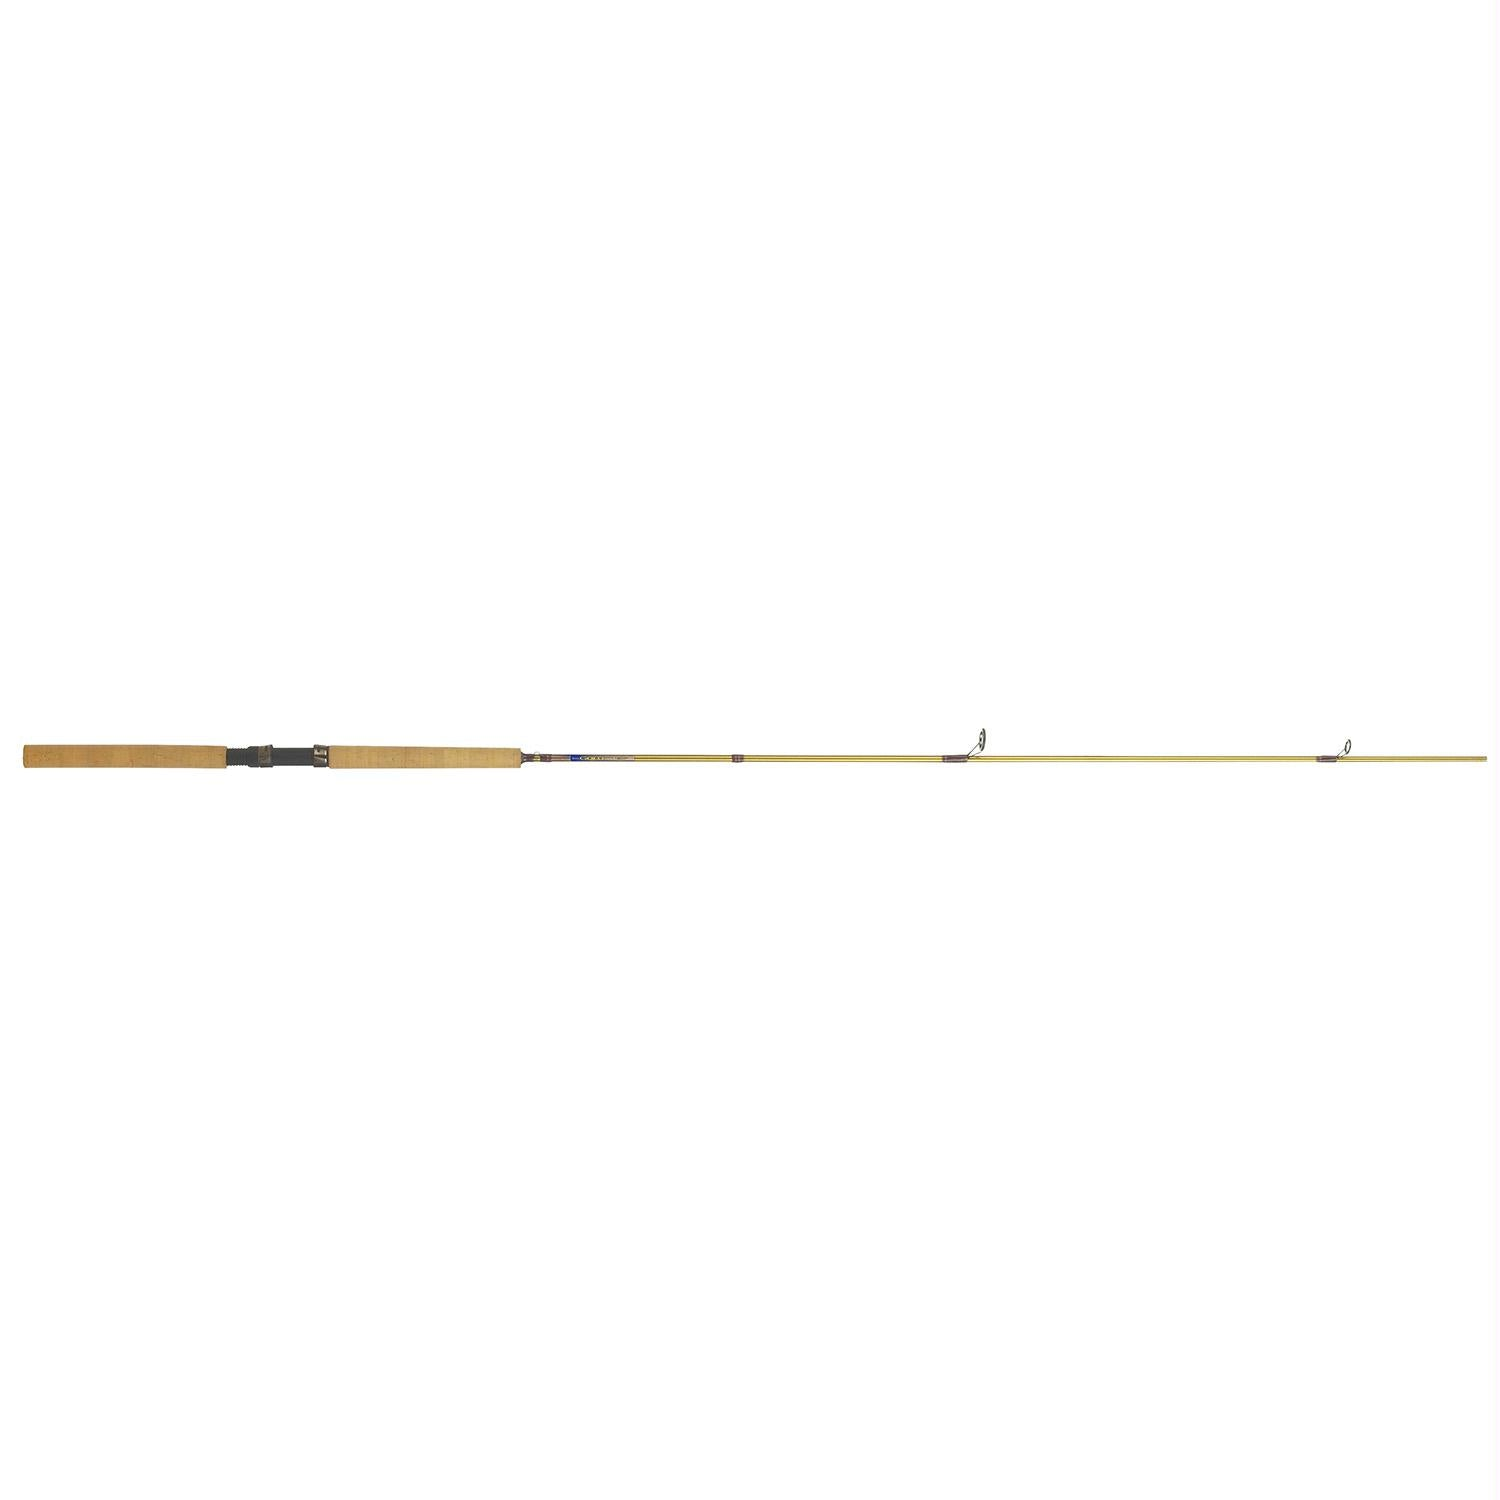 BnM Bucks Gold Jig Pole 10 foot 2 Piece - Survival Camping Pro